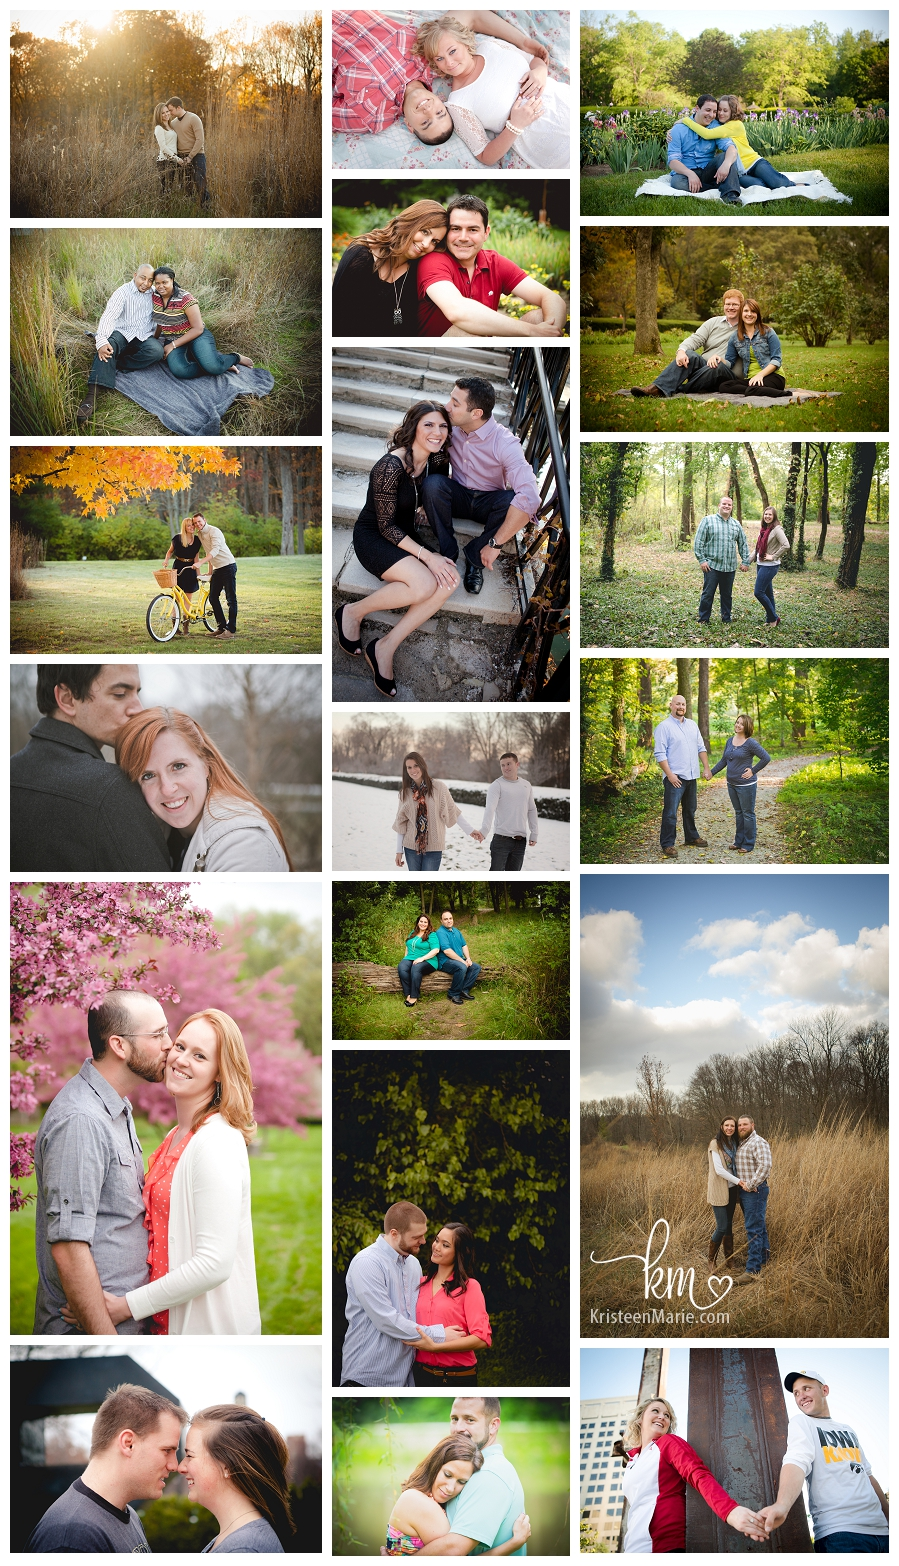 Engagement photography in Indianapolis